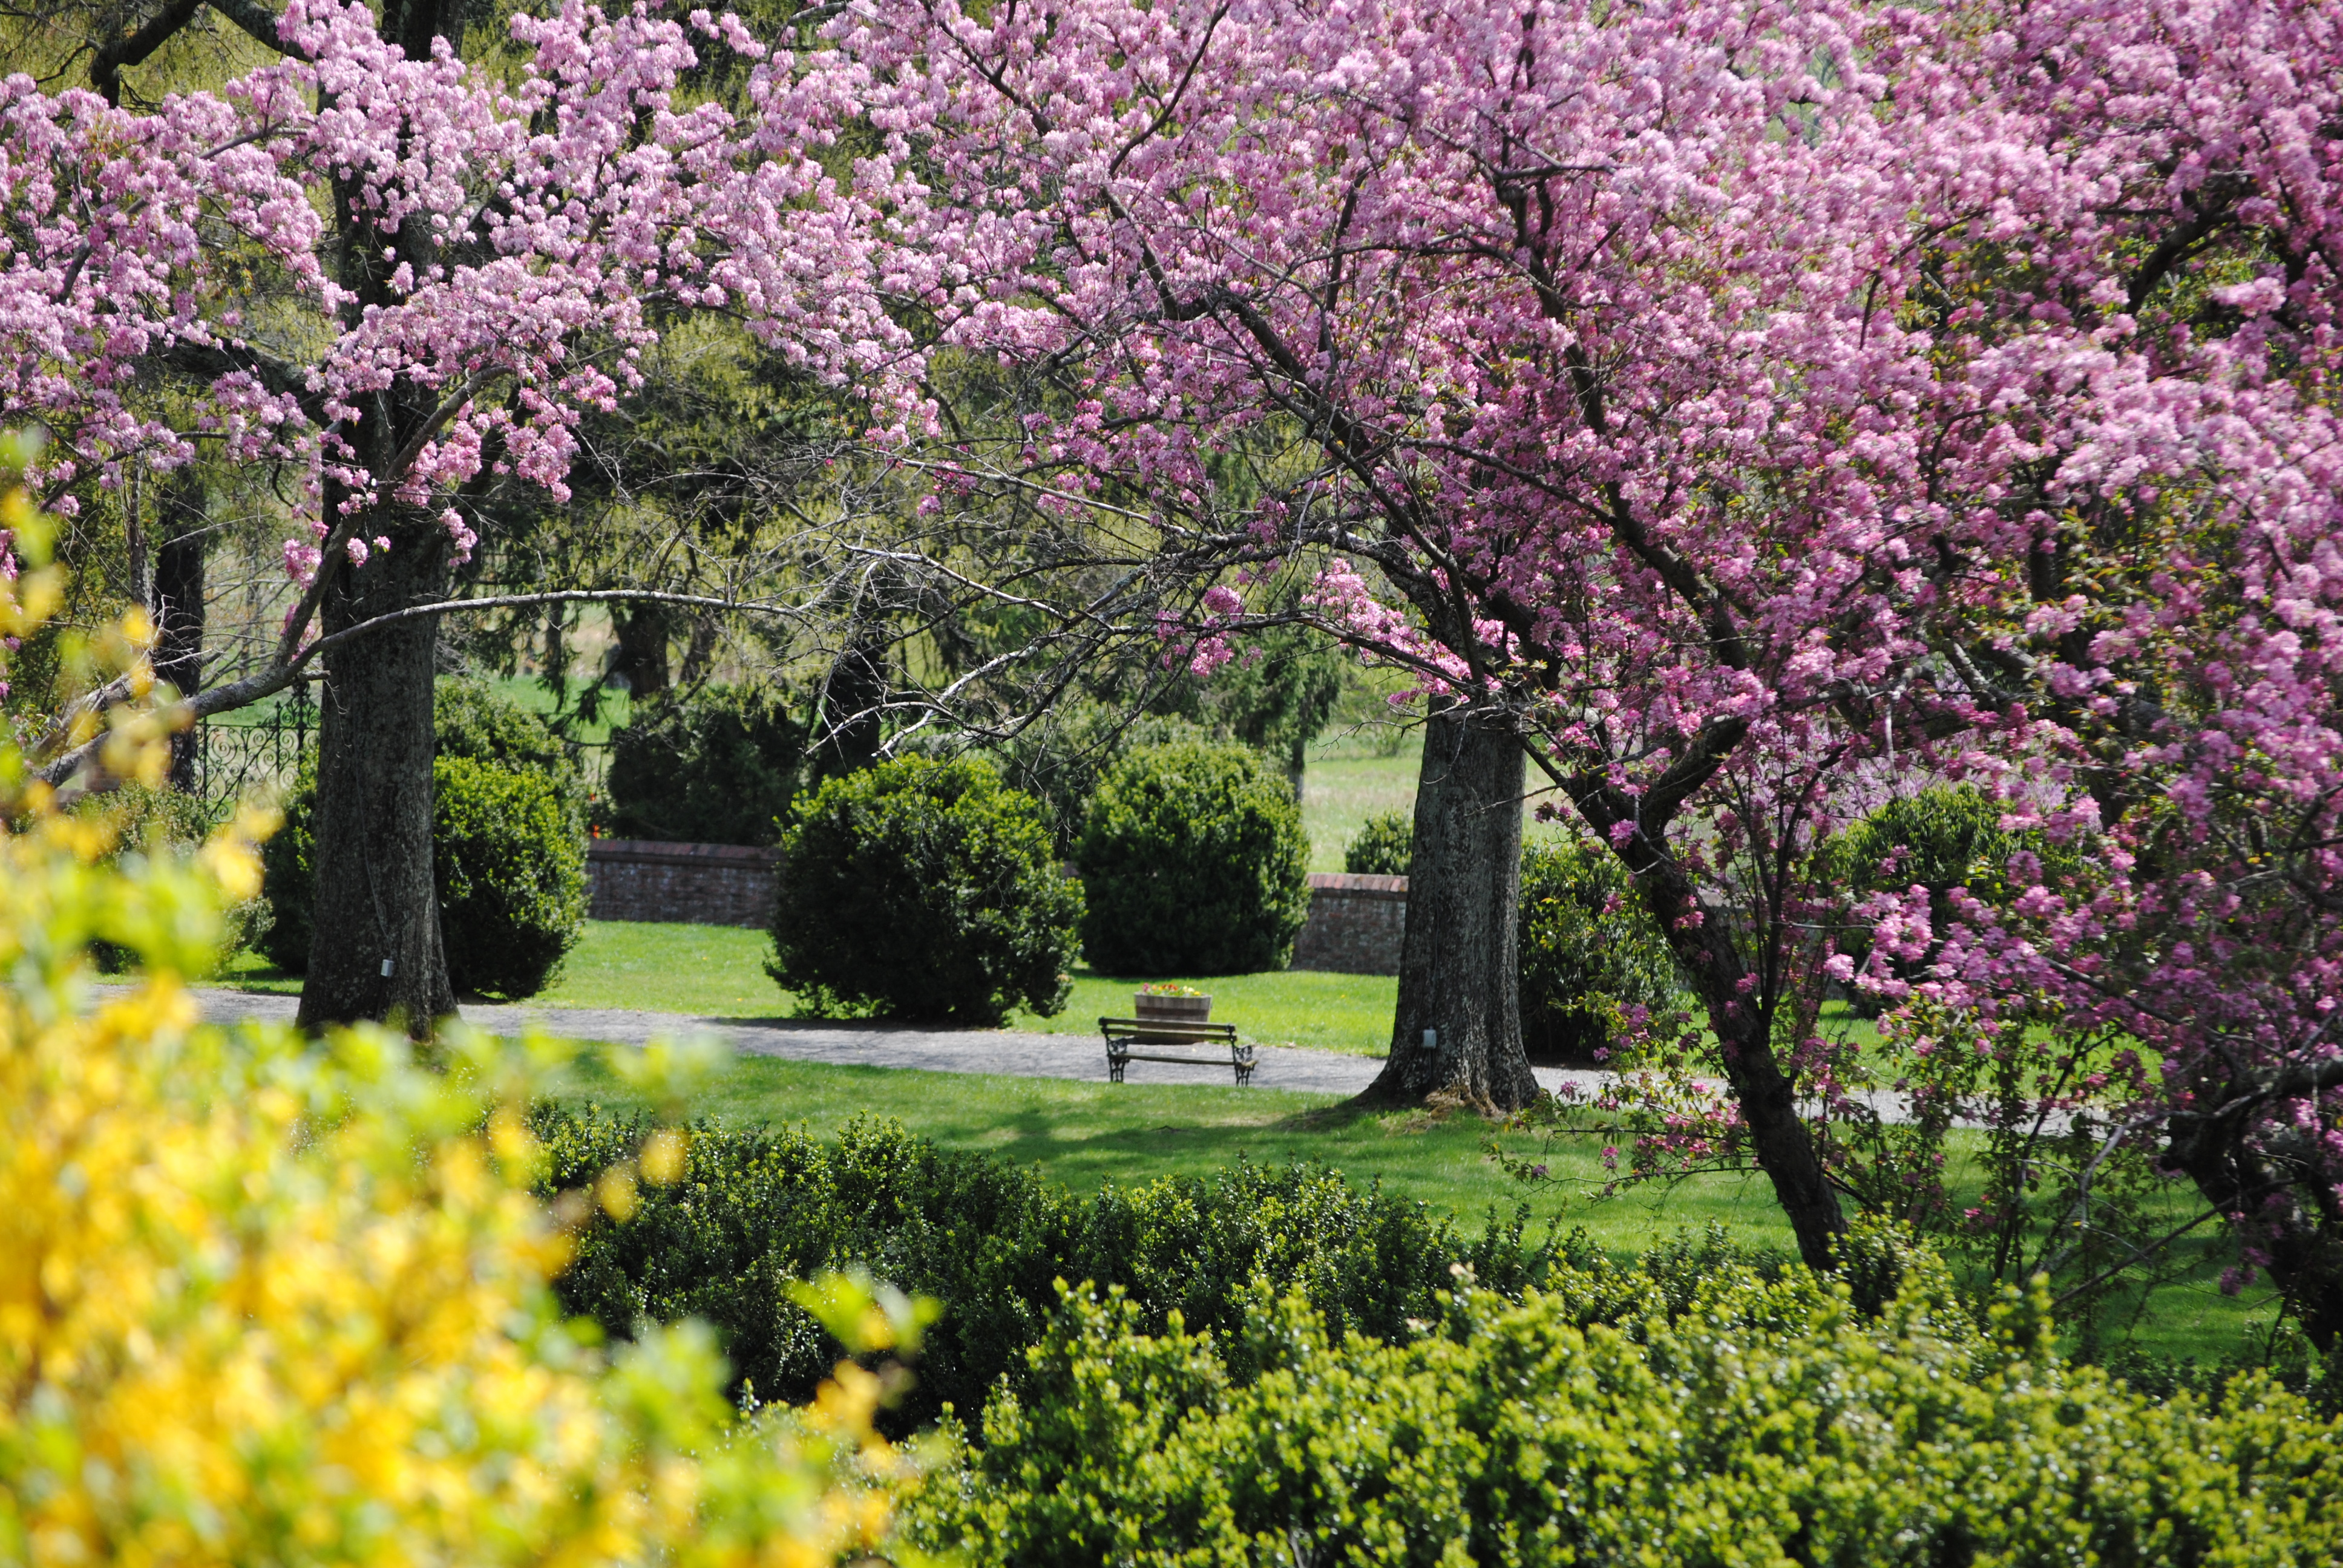 Planting, weeding, pruning – it takes a lot to keep Marguerite Davis's formal gardens looking their best! Your $25 donation will will help fund the ongoing care of this historic landscape.